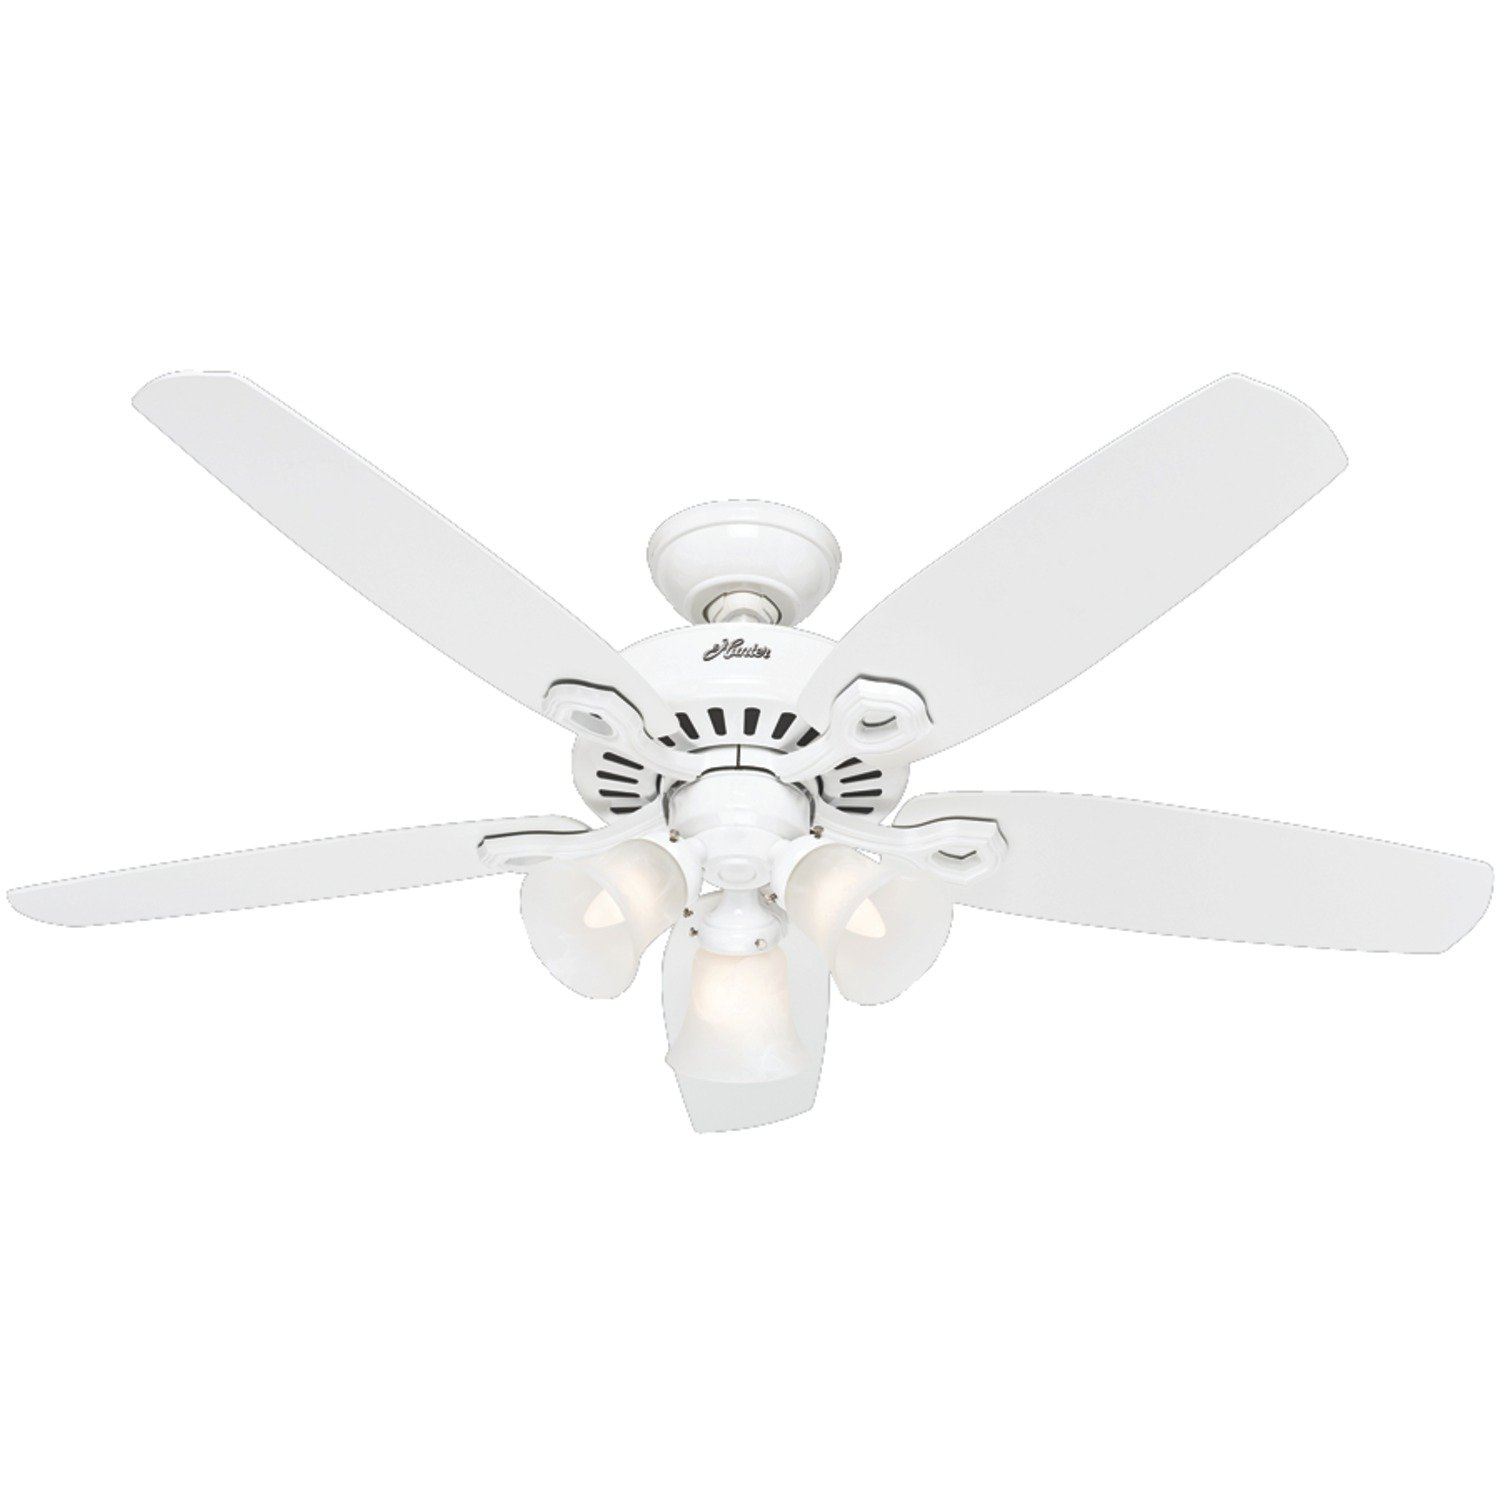 Hunter Indoor Ceiling Fan, with pull chain control - Builder Plus 52 inch, White, 53236